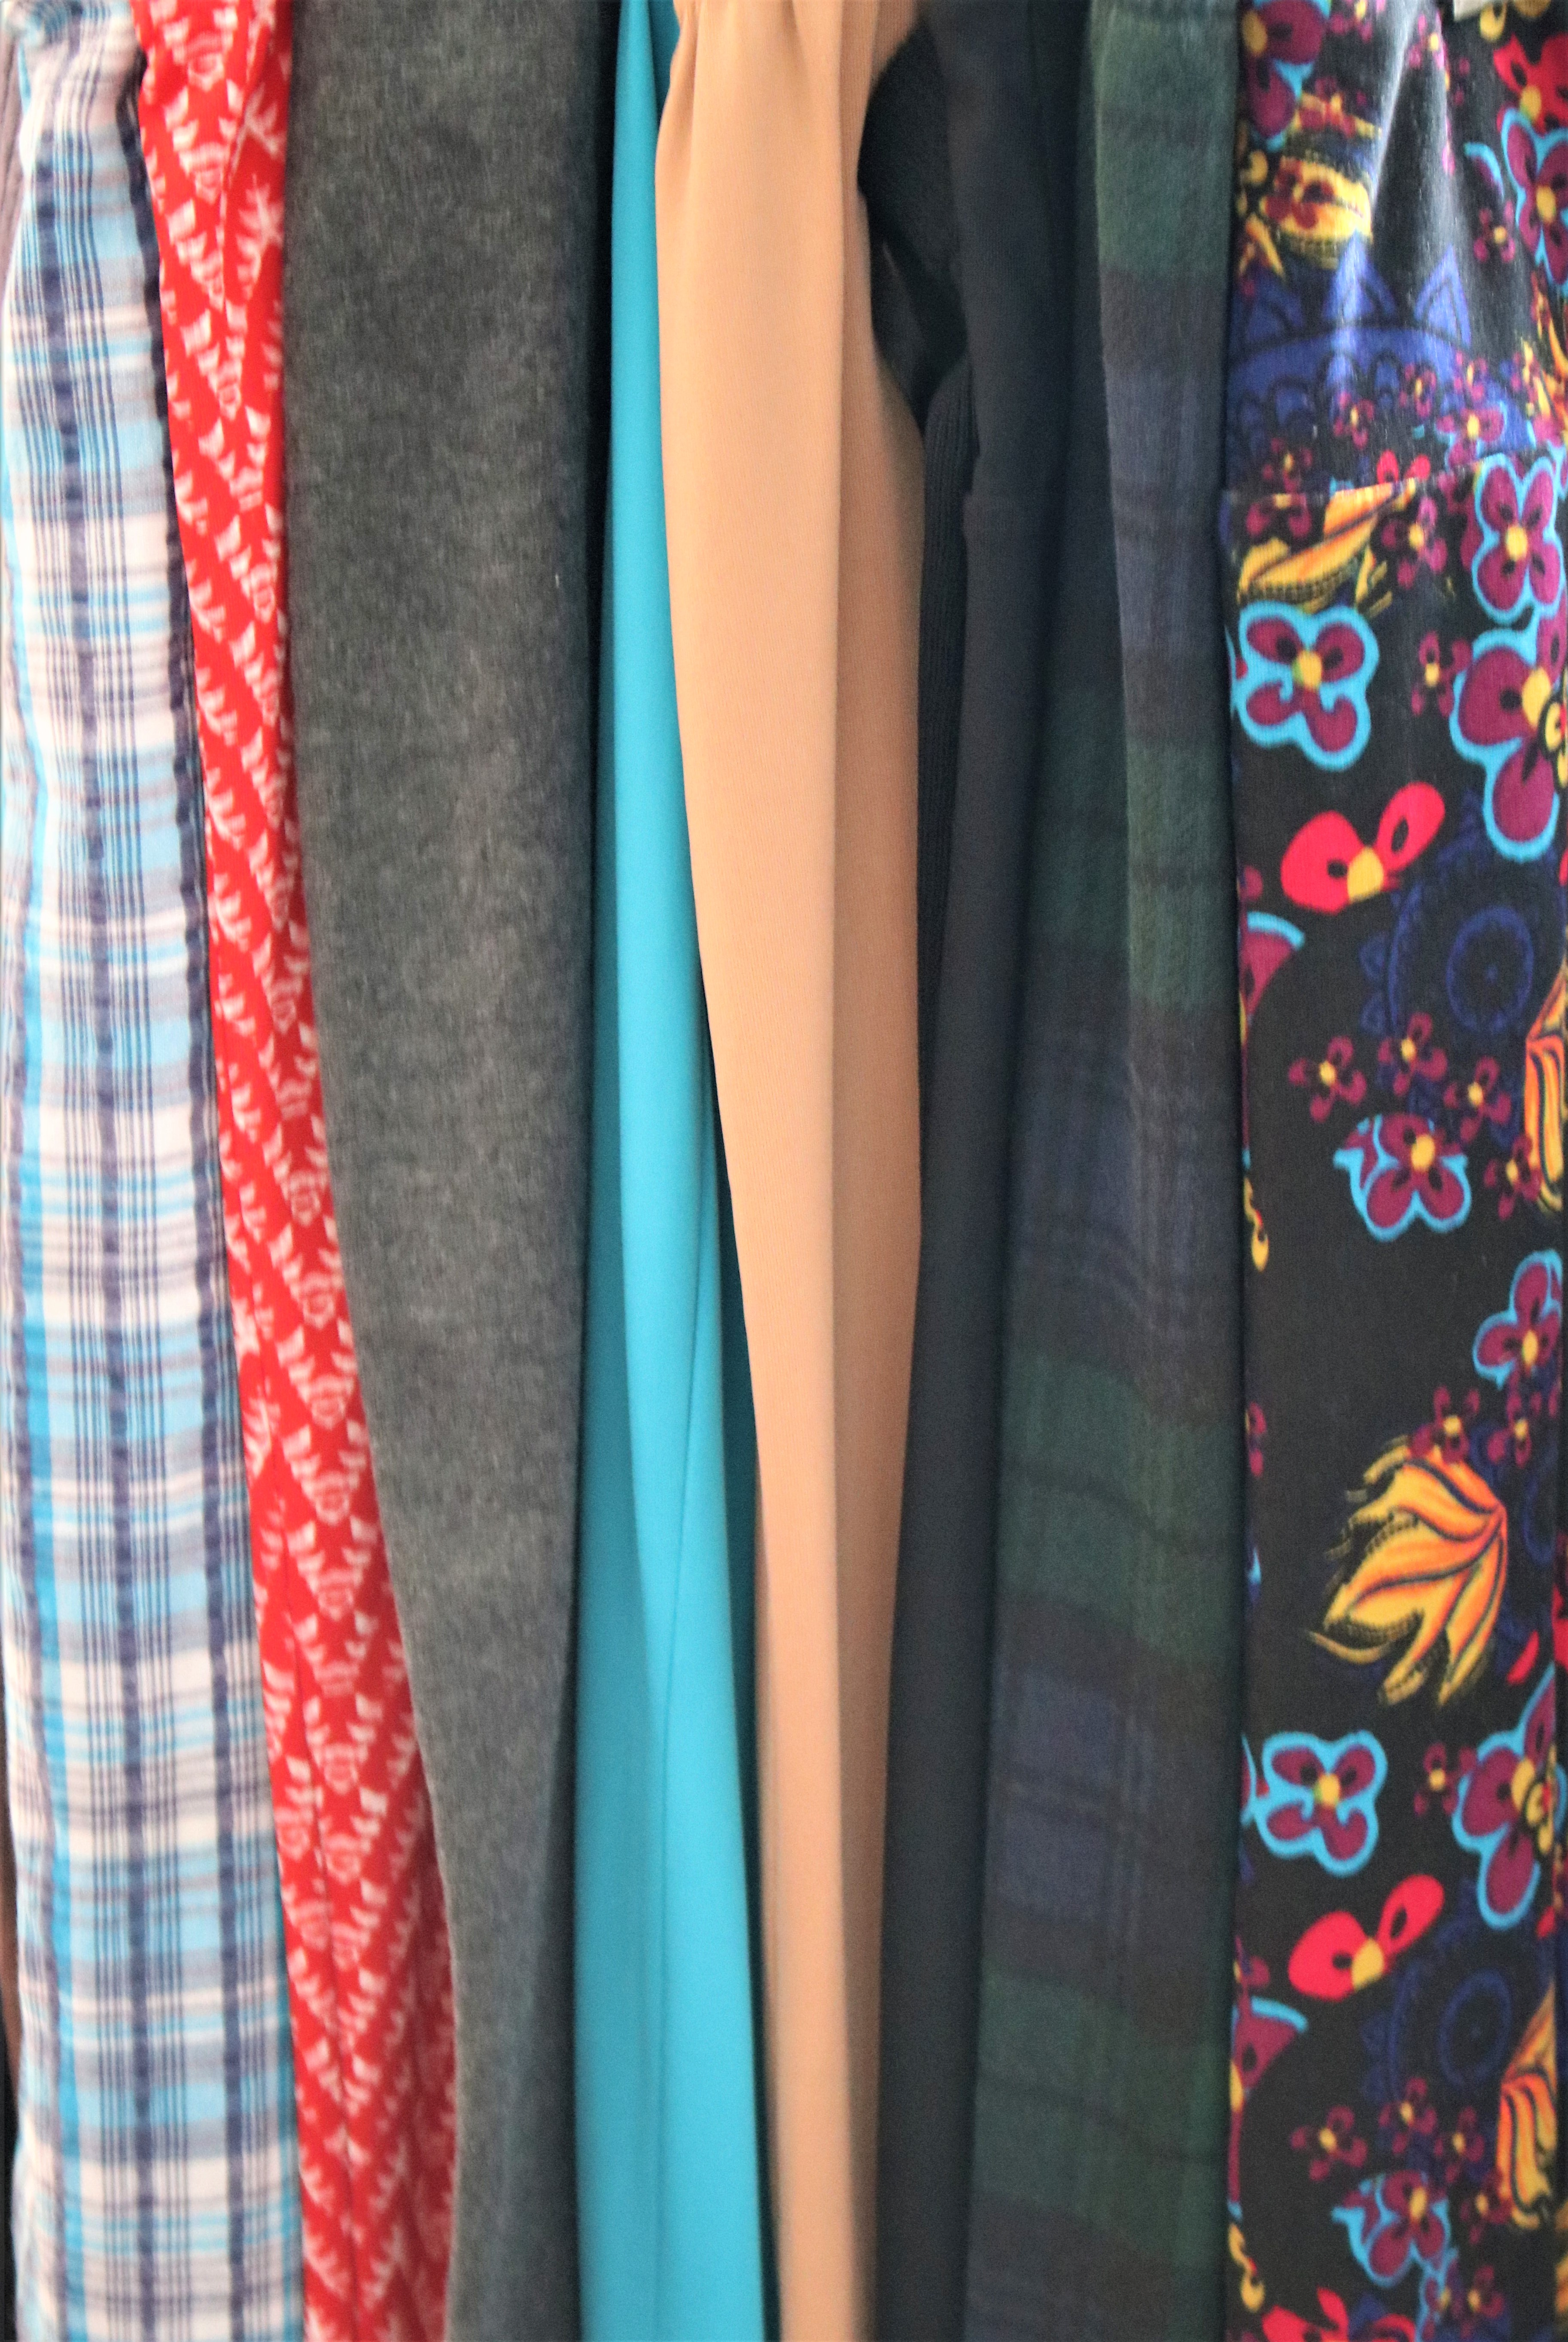 Ladies' Pants, Yoga Pants and Sweat Pants (Not Boutique) 2.00 May 3rd-8th